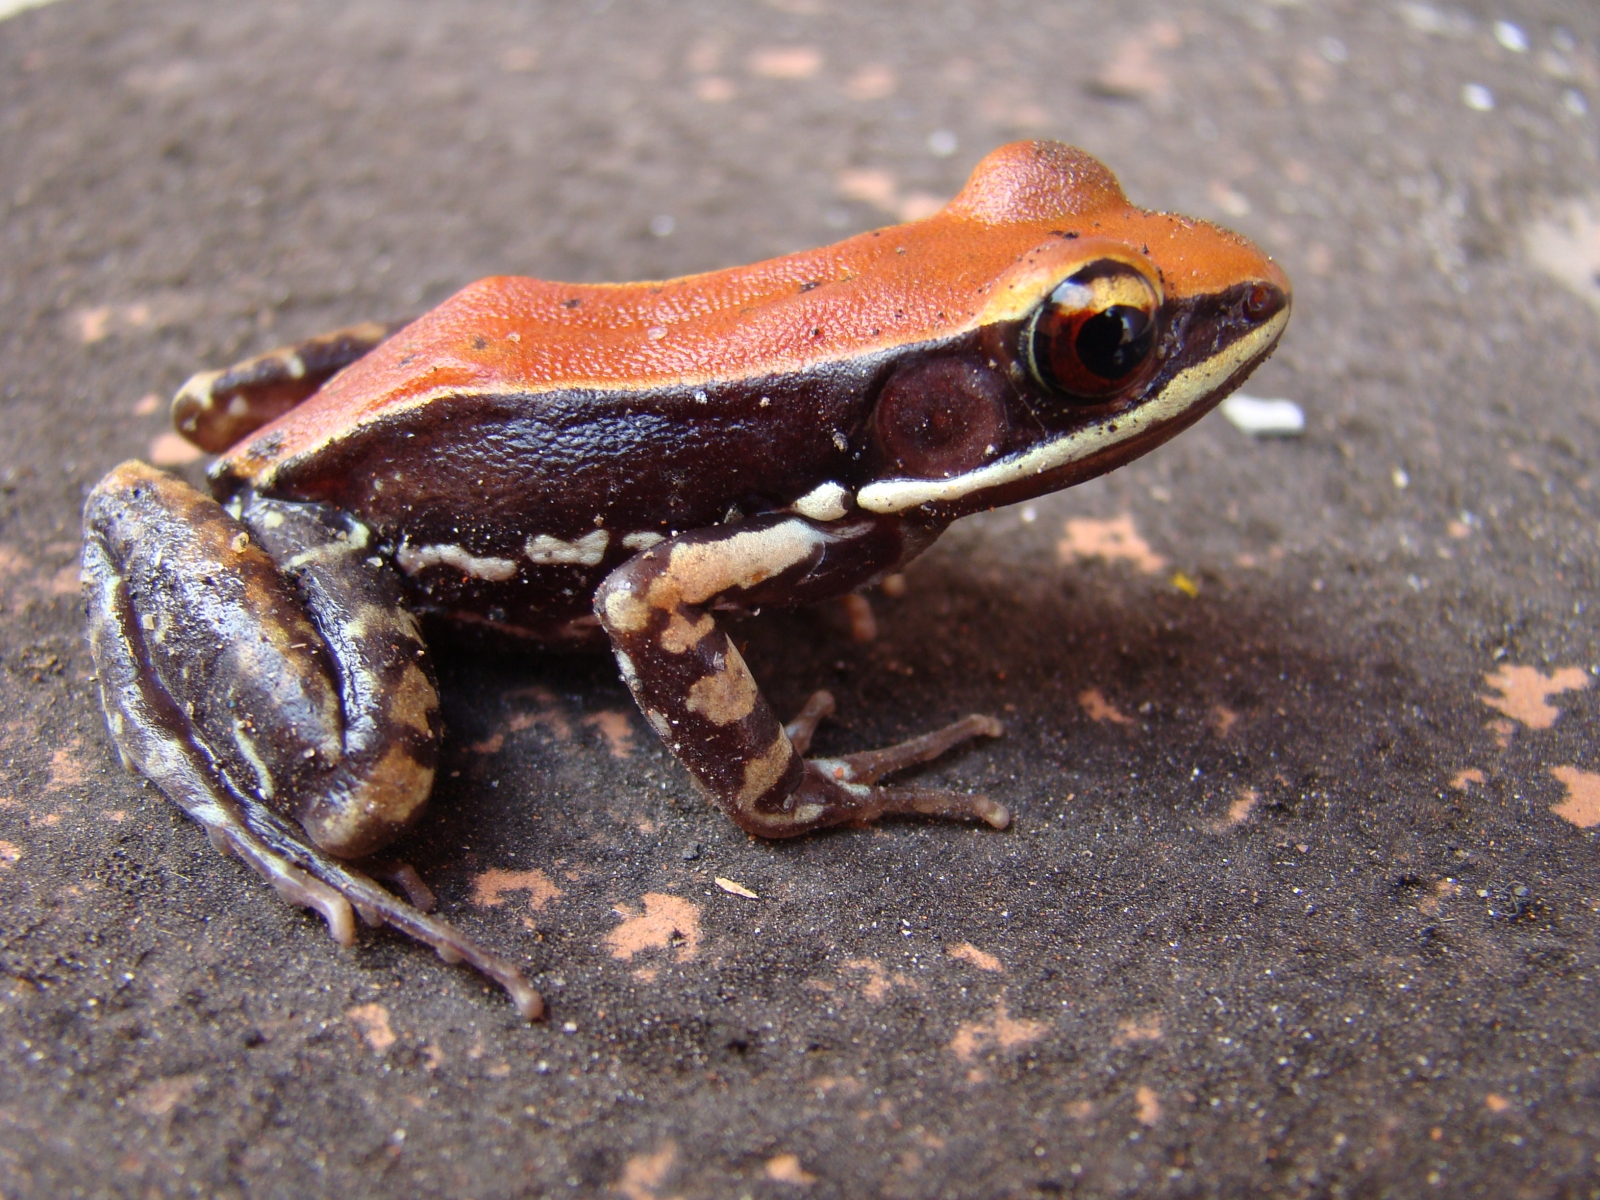 Frog slime contains a secret ingredient that can kill flu viruses